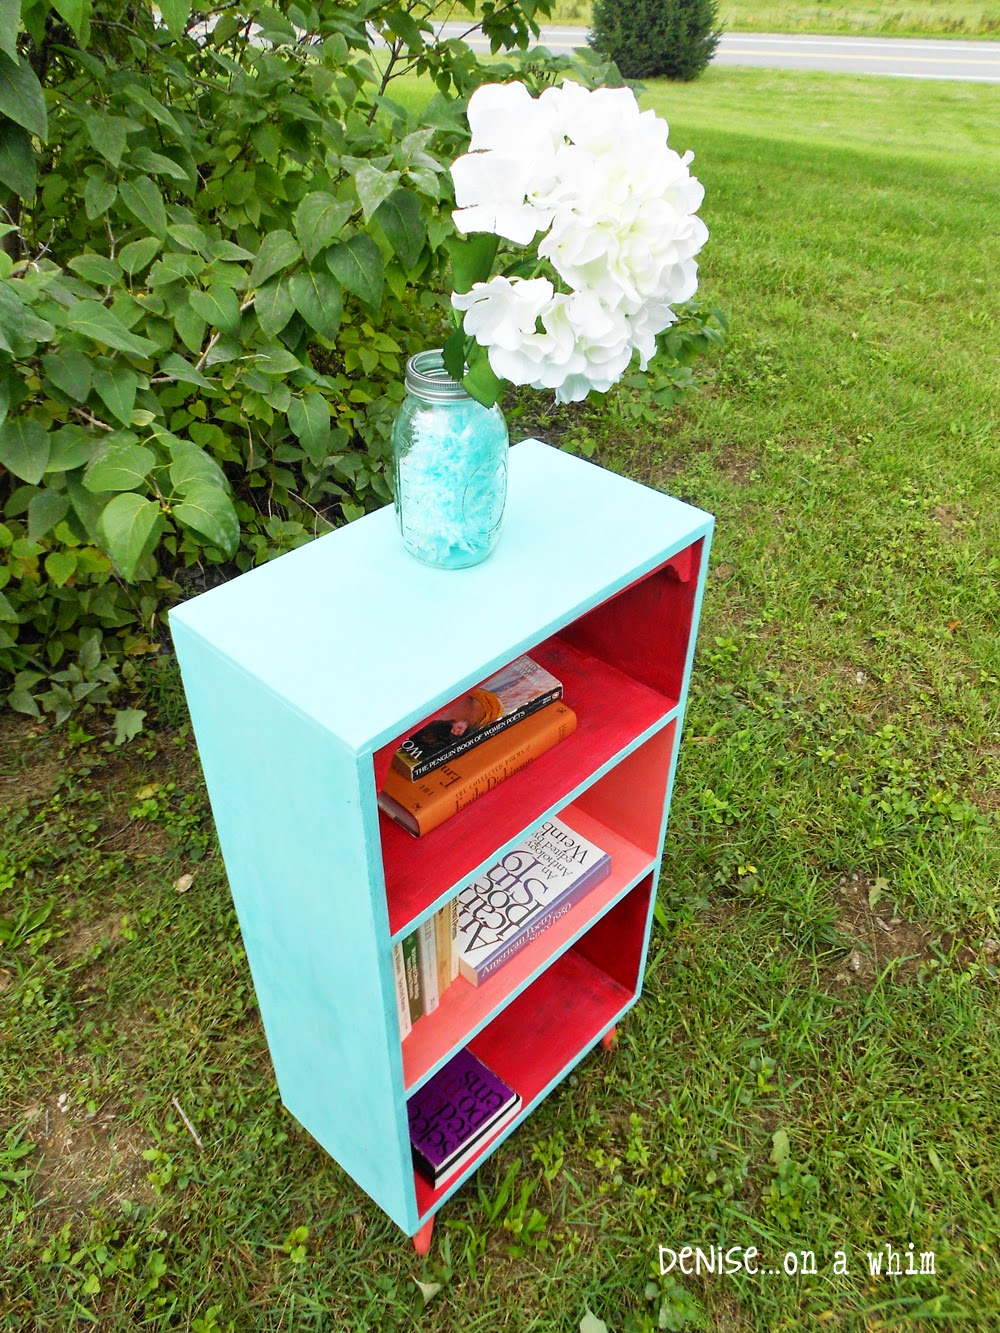 Boring Garage Sale Find gets New Life from Denise on a Whim